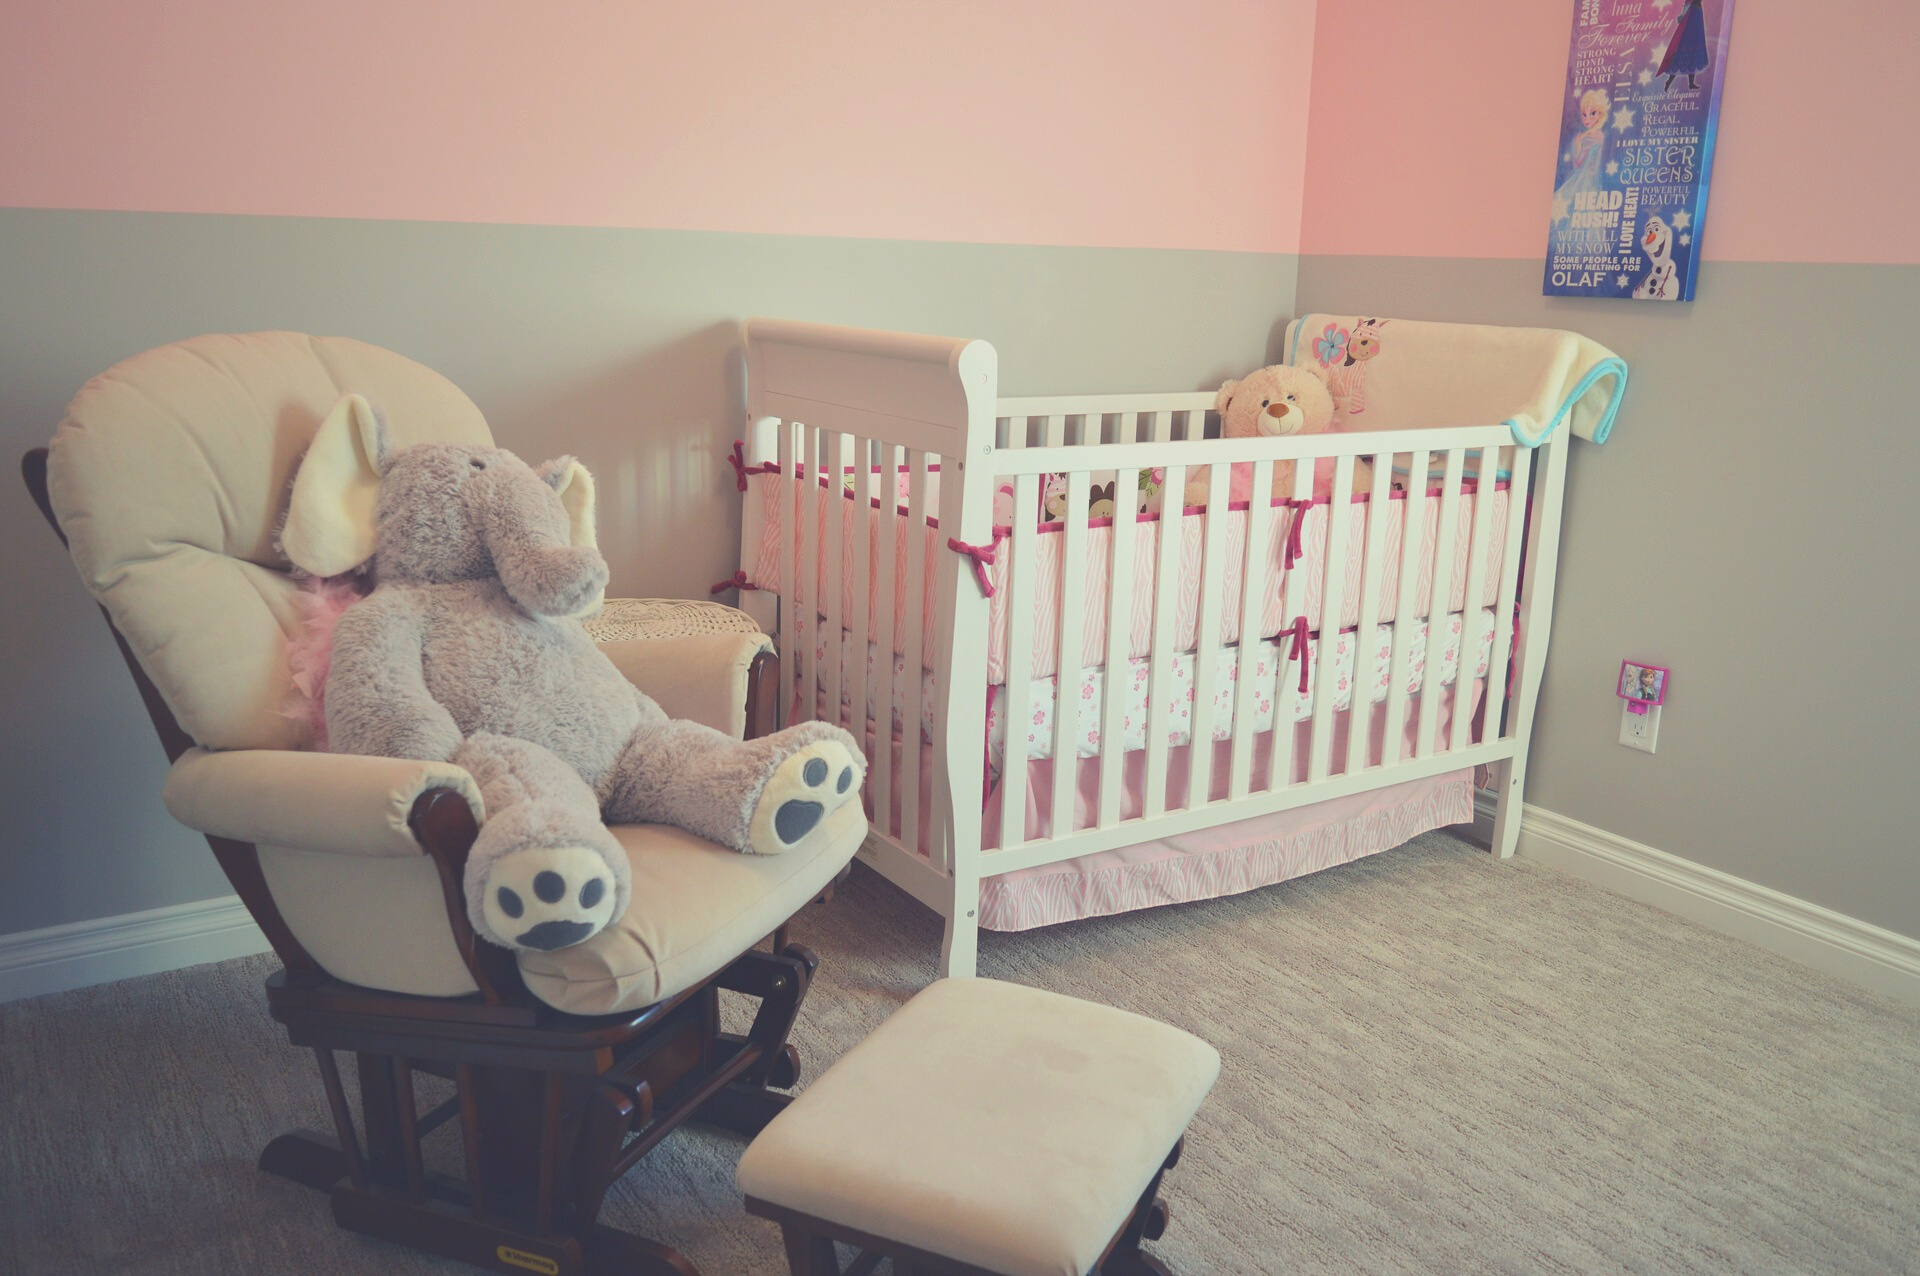 How to Keep Your Toddler in Their Crib - Smart Parent Advice